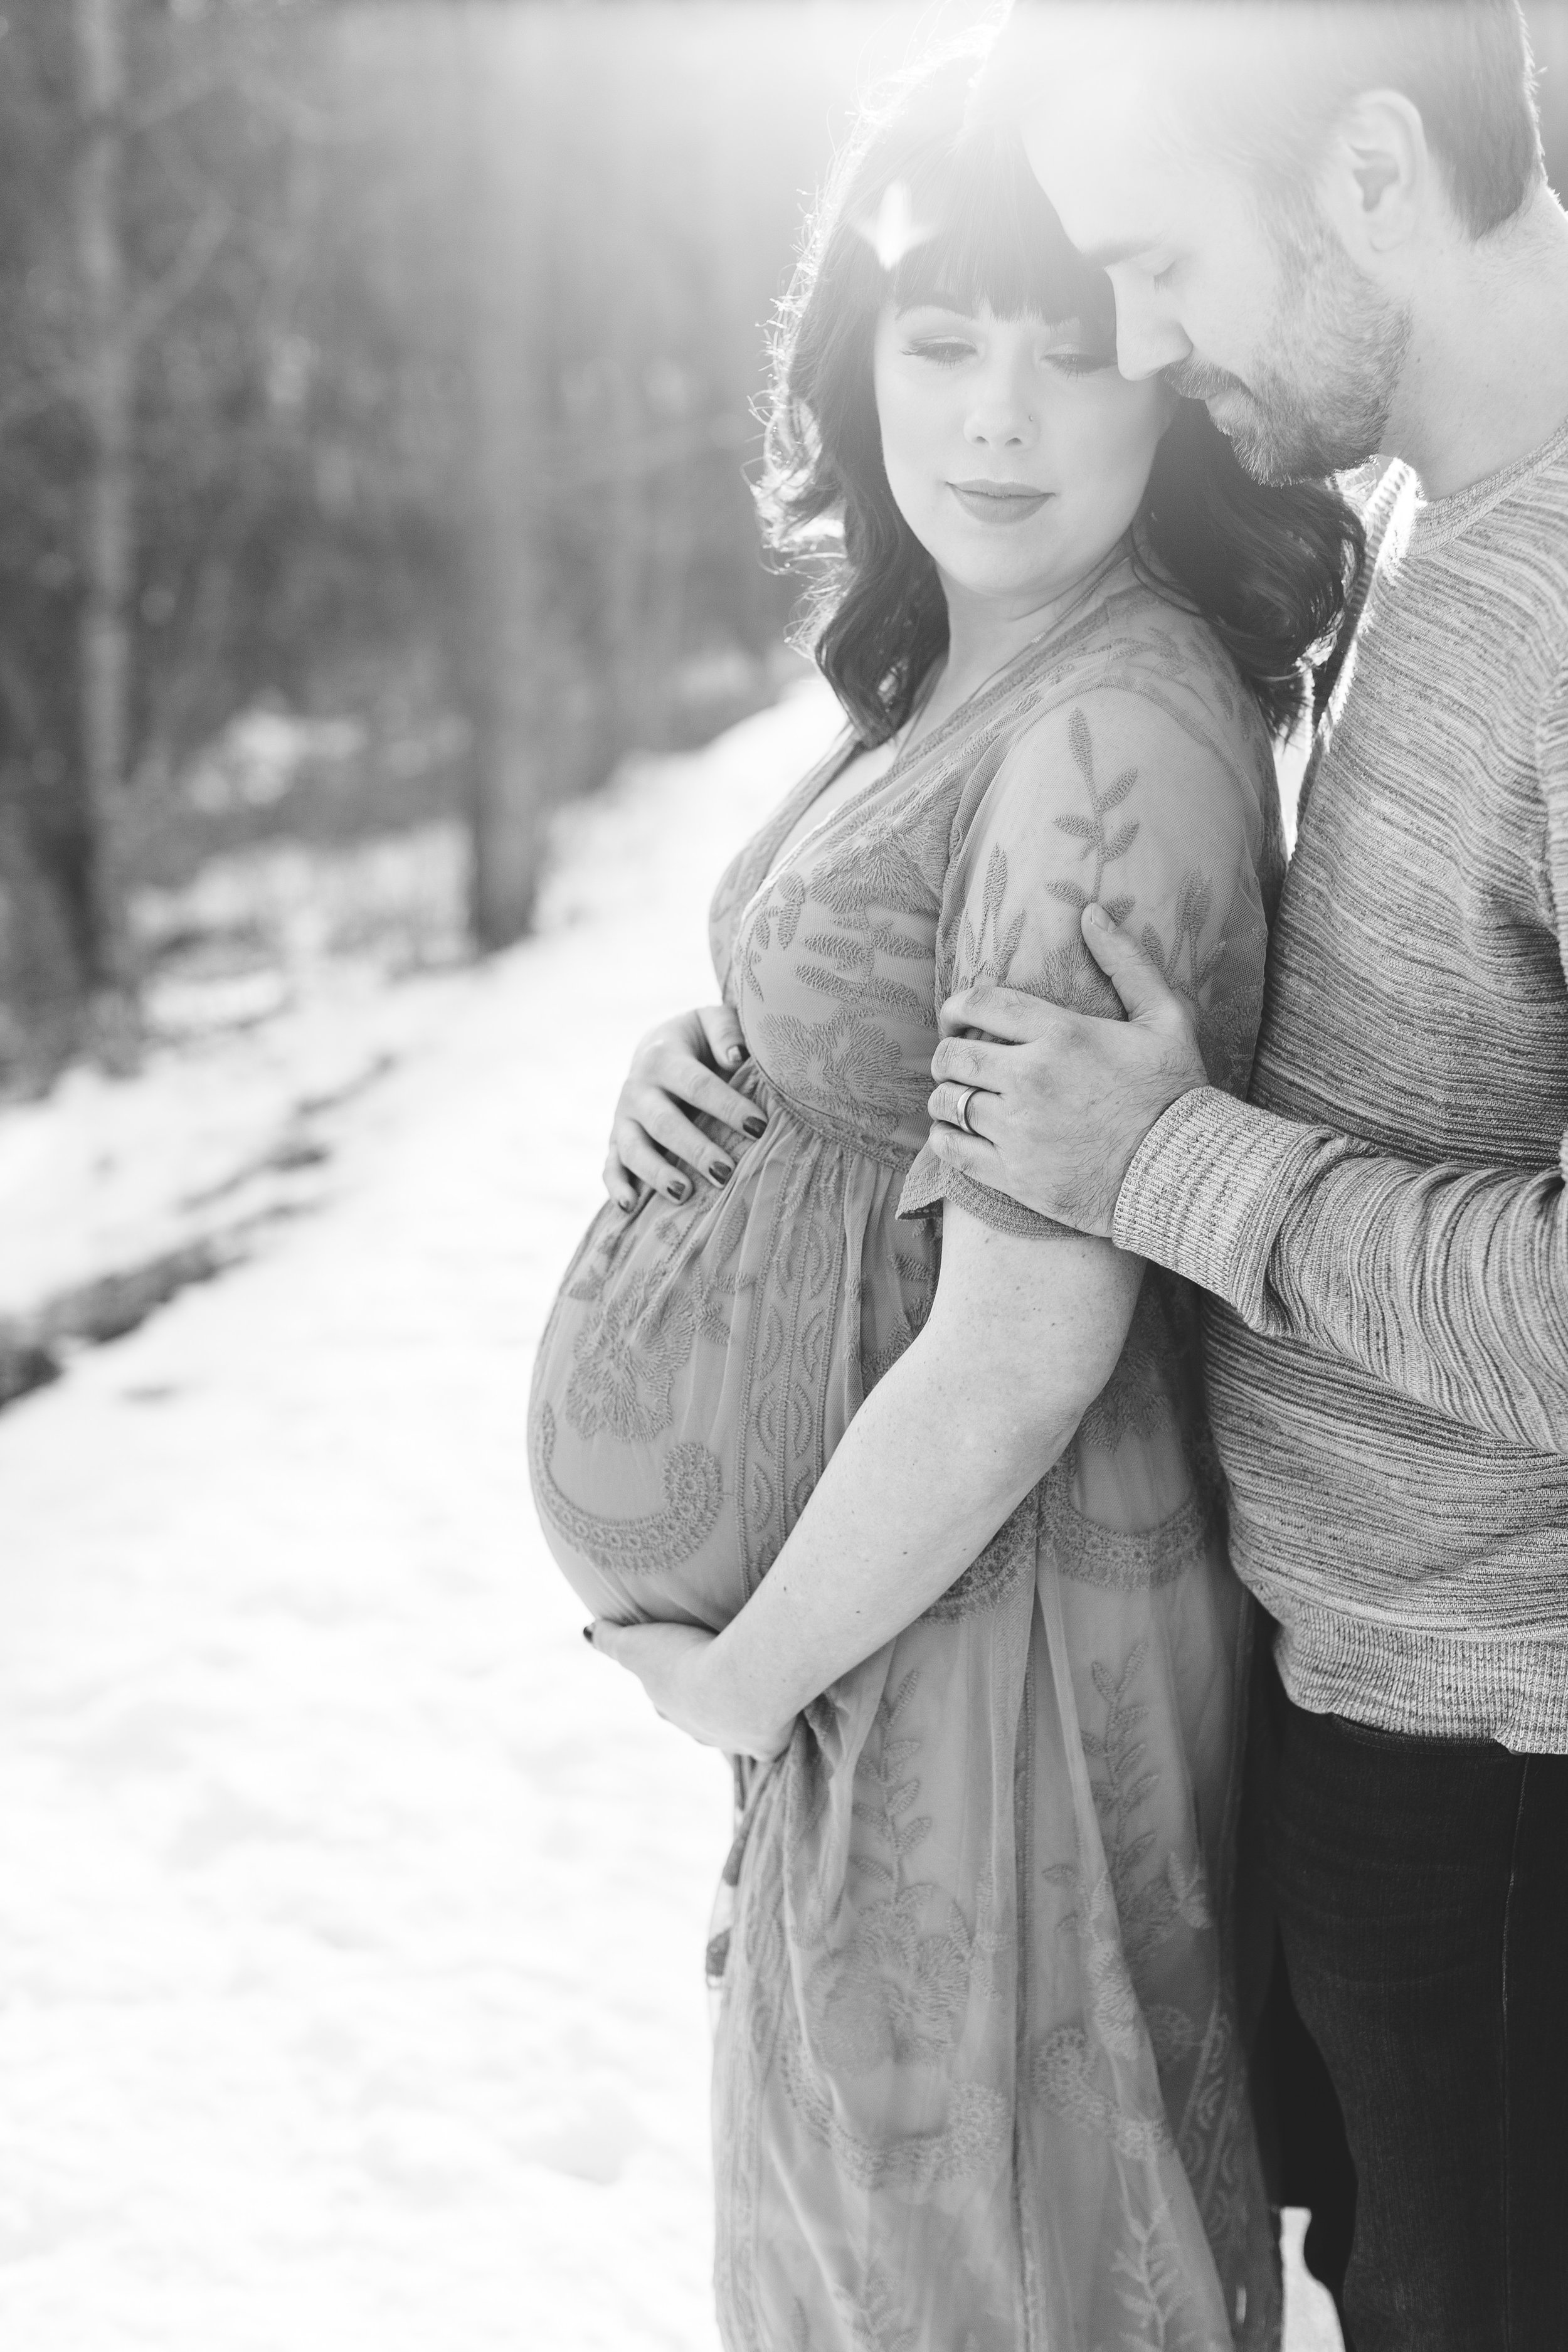 Pregnant mom and dad to be in black and white photo holding belly in winter maternity session Minnesota maternity photographer Mallory Kiesow Photography